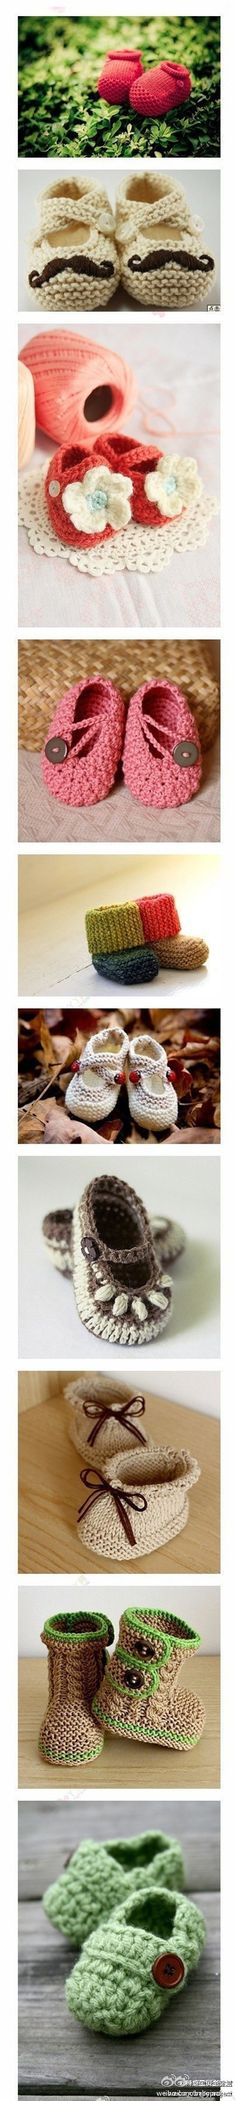 lovely crochet baby shoes